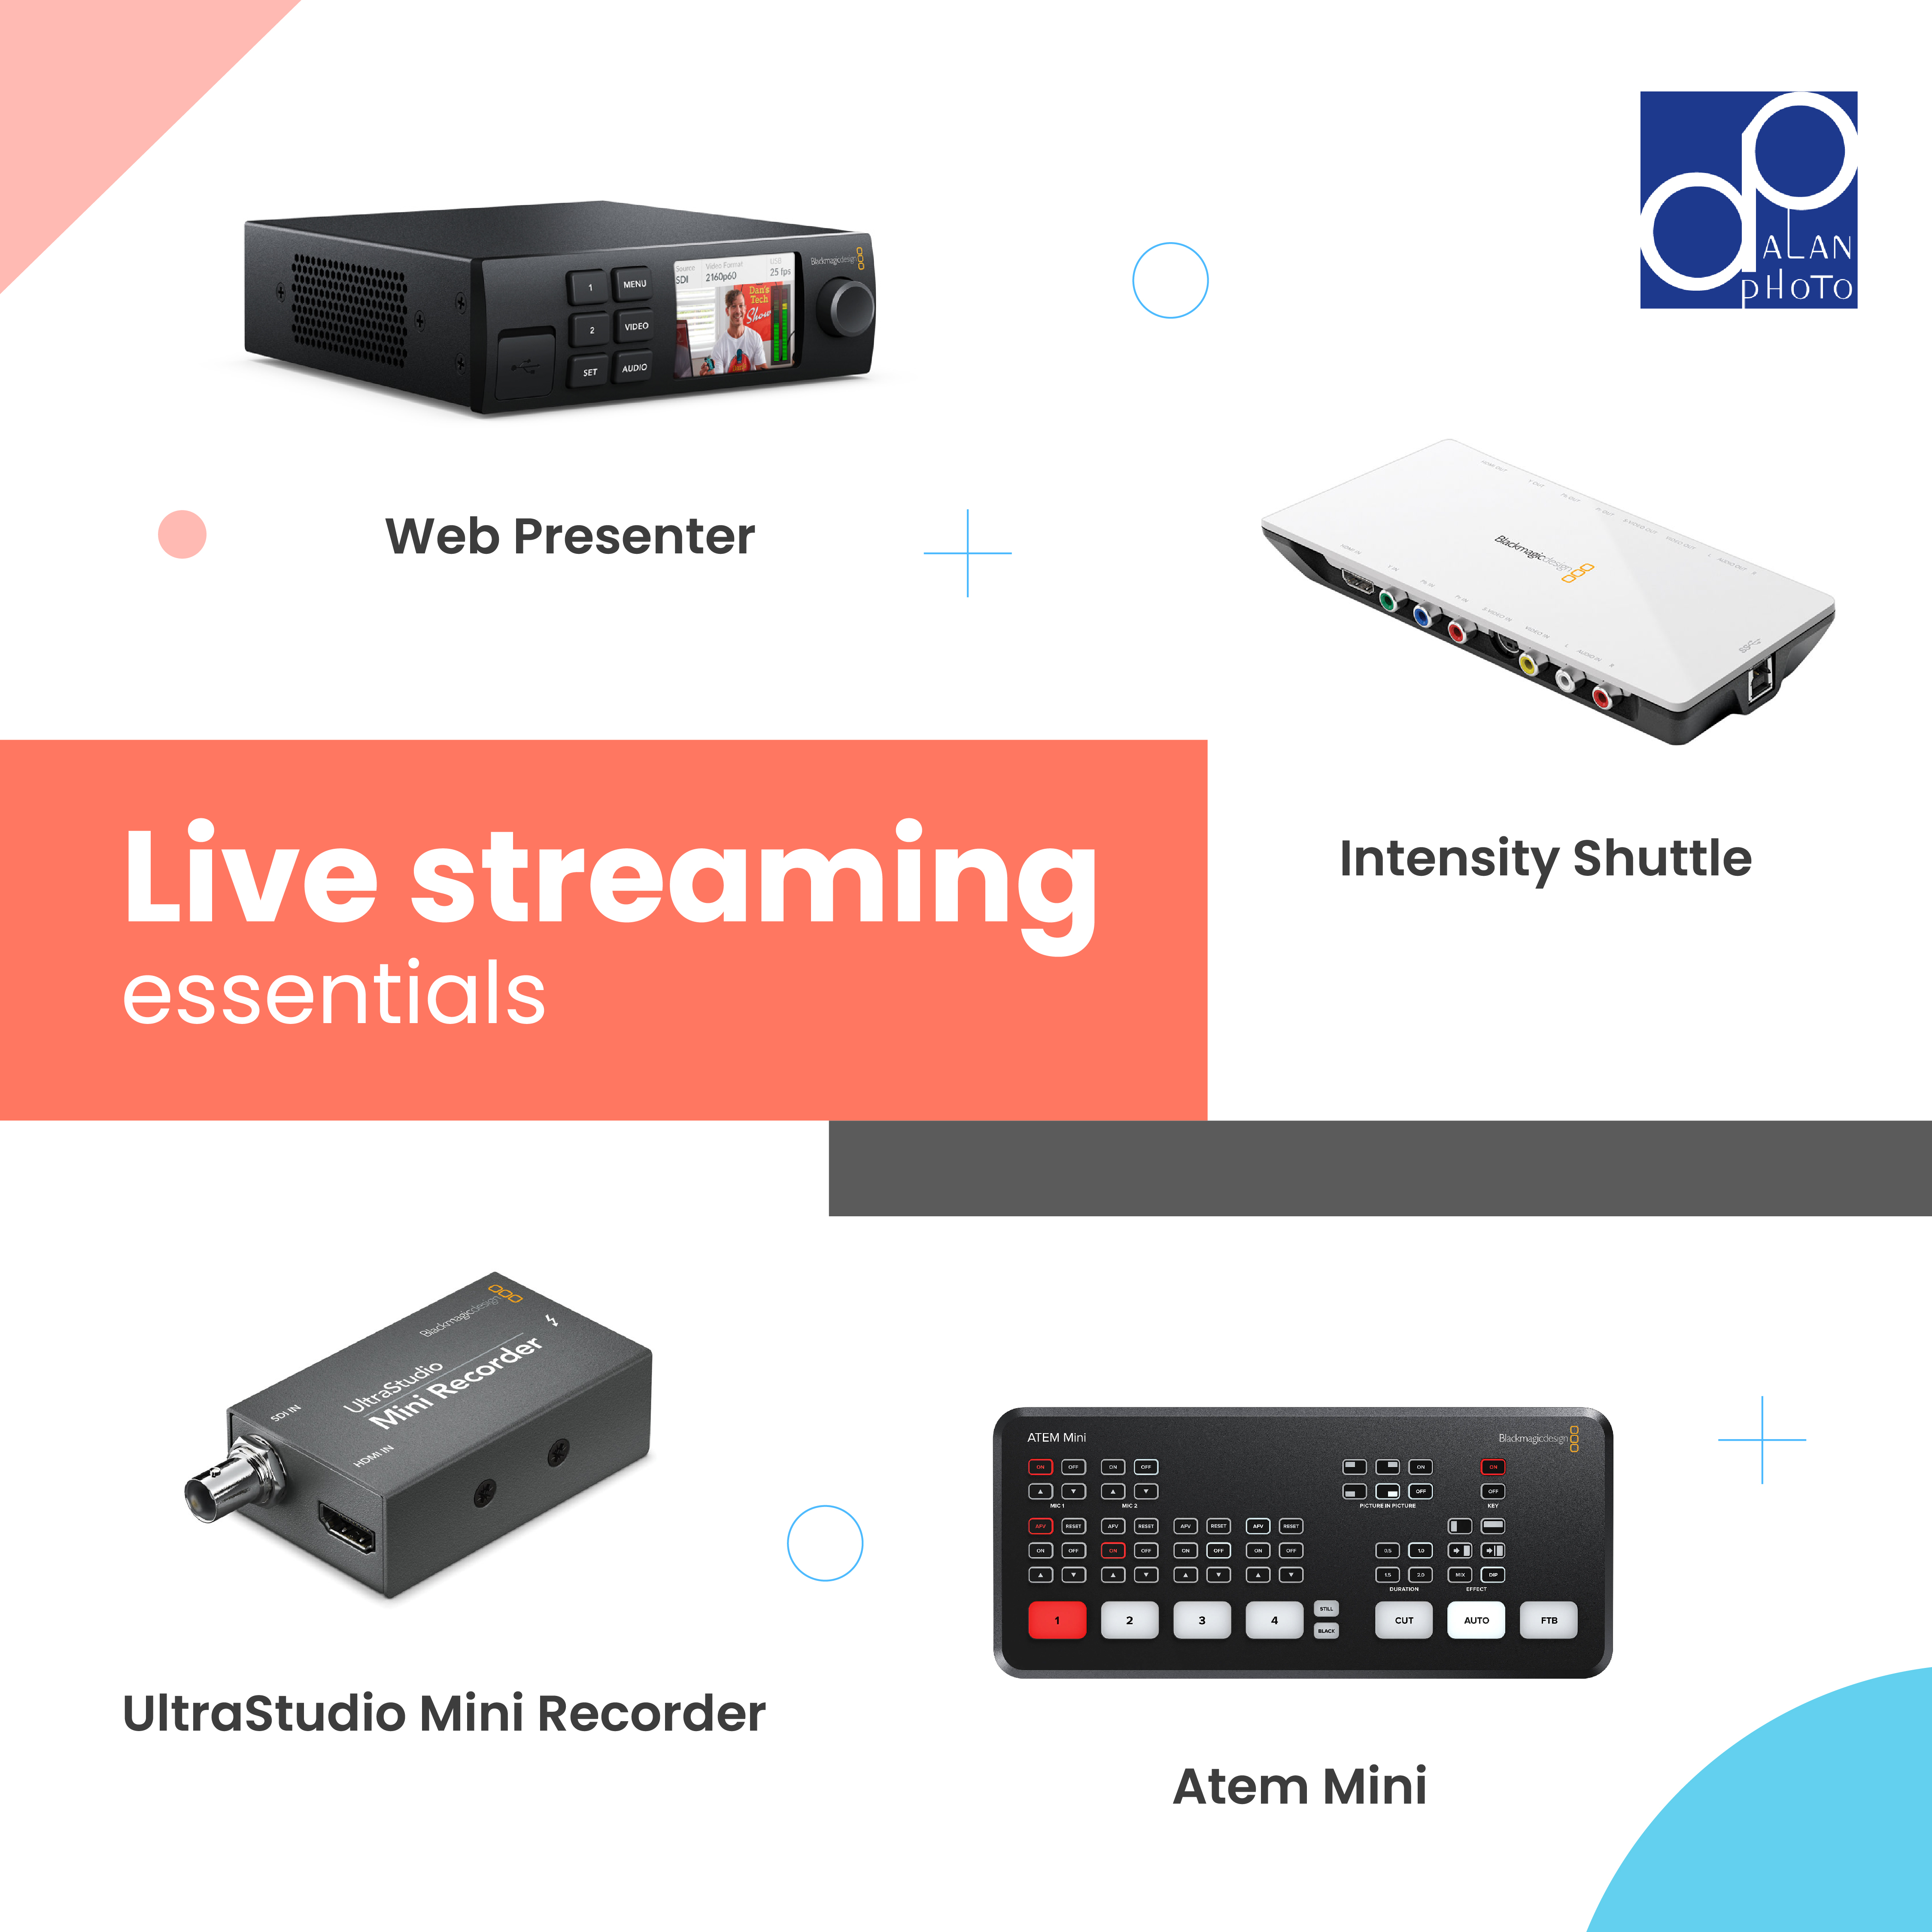 Importance of Live Streaming